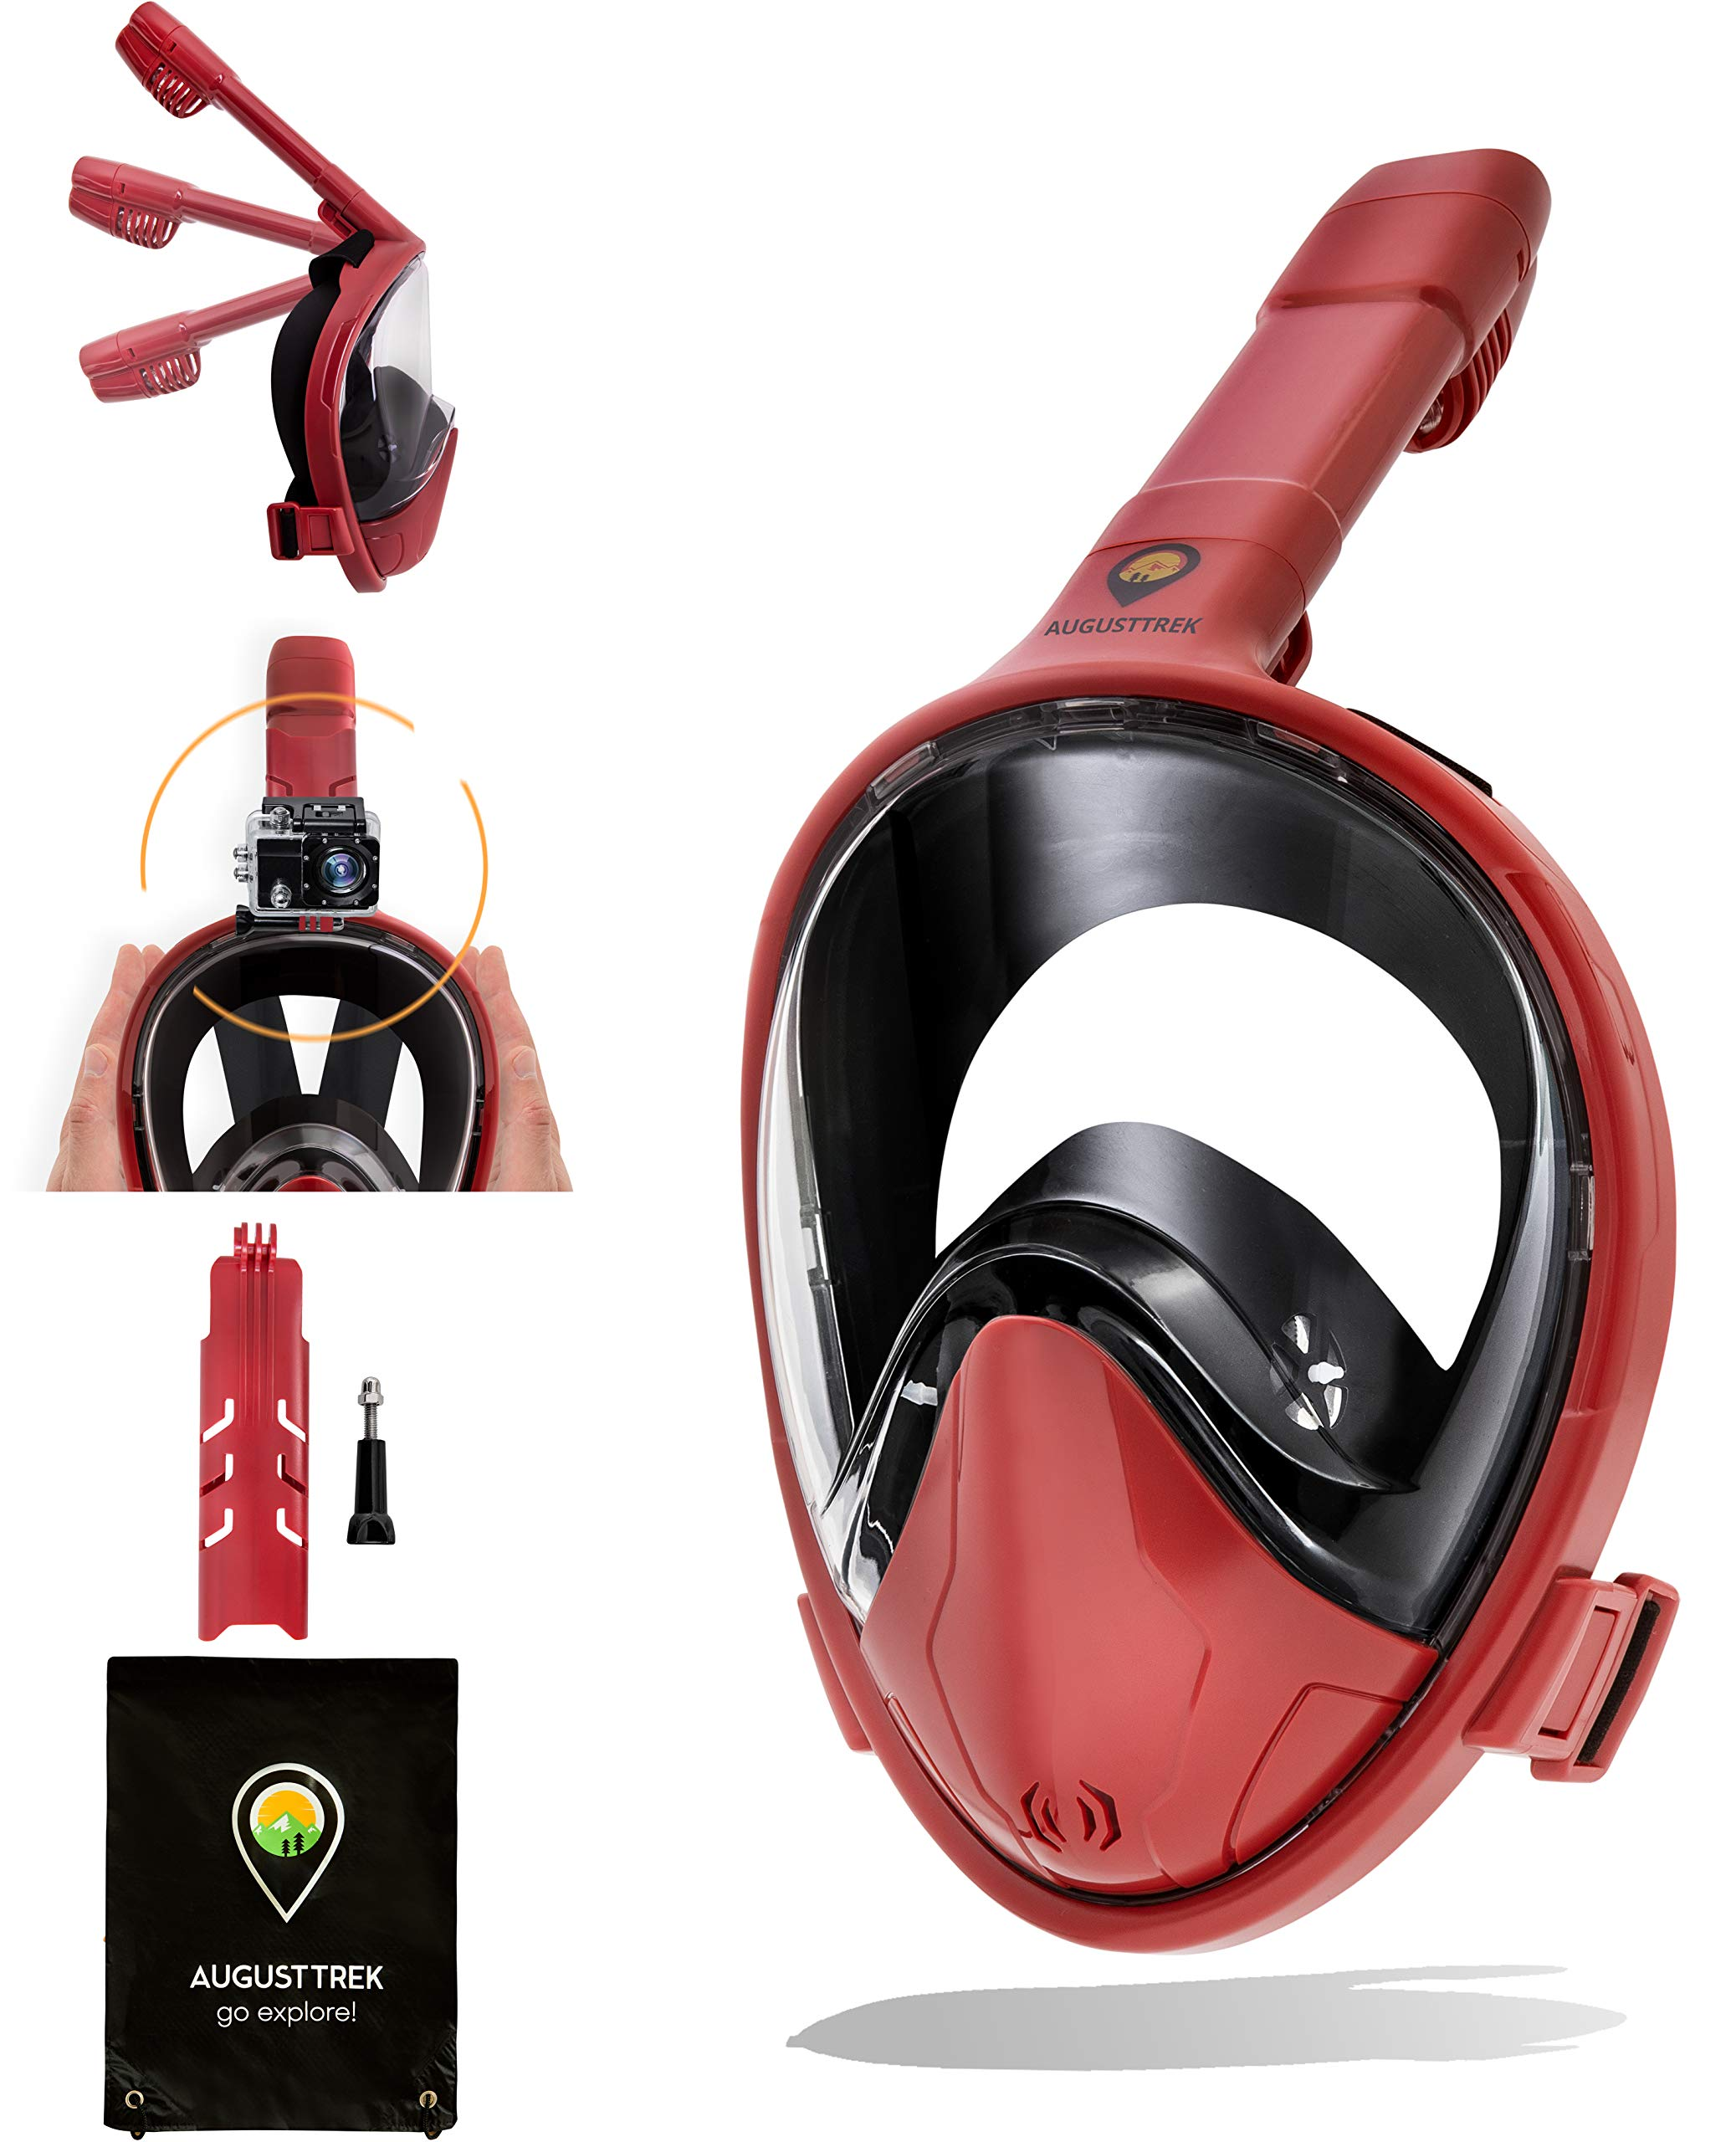 AugustTrek ONE80 GoPro Compatible Snorkel Mask - Full Face Design, Foldable Tube and Upgraded Wide 180° Lens, Largest in Market. Breathe Comfortably with Enhanced Easy Breathing Technology.